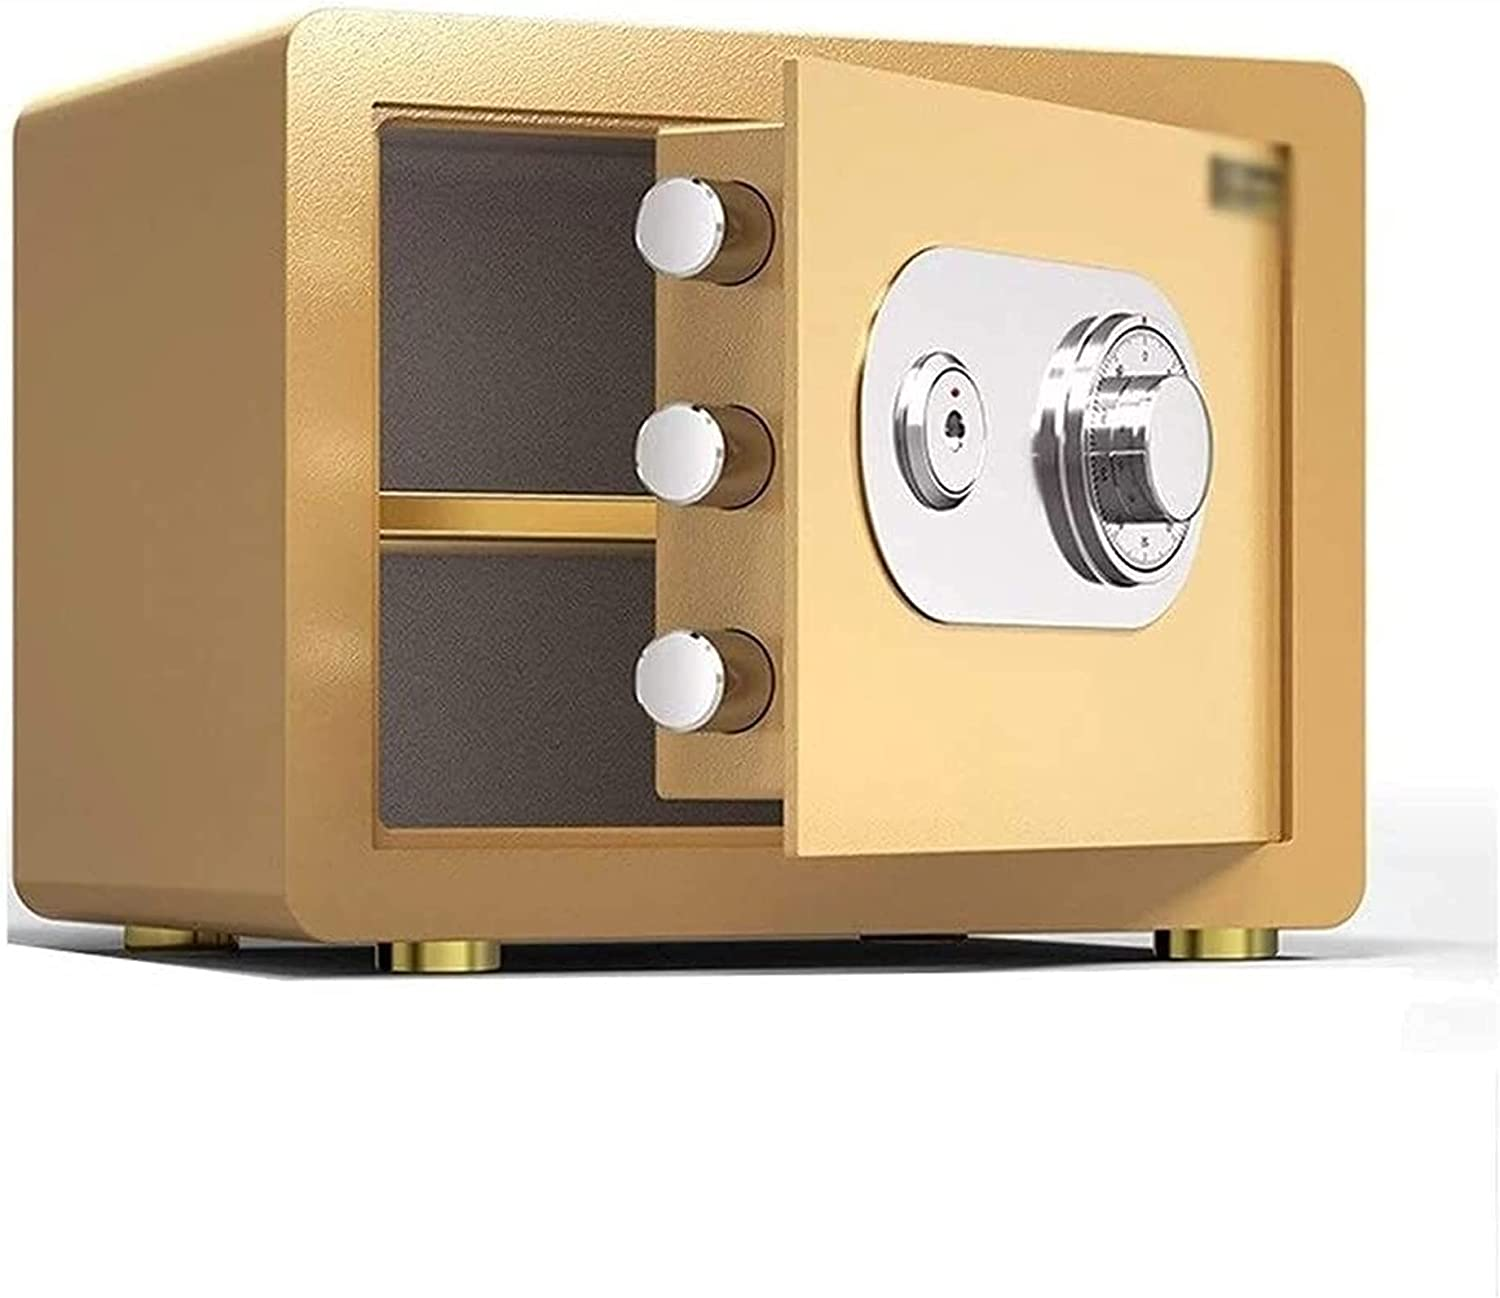 PARTAS 2021 NEW Security Max 54% OFF Lock Cabinet Boxes Max 70% OFF Home Safes 25